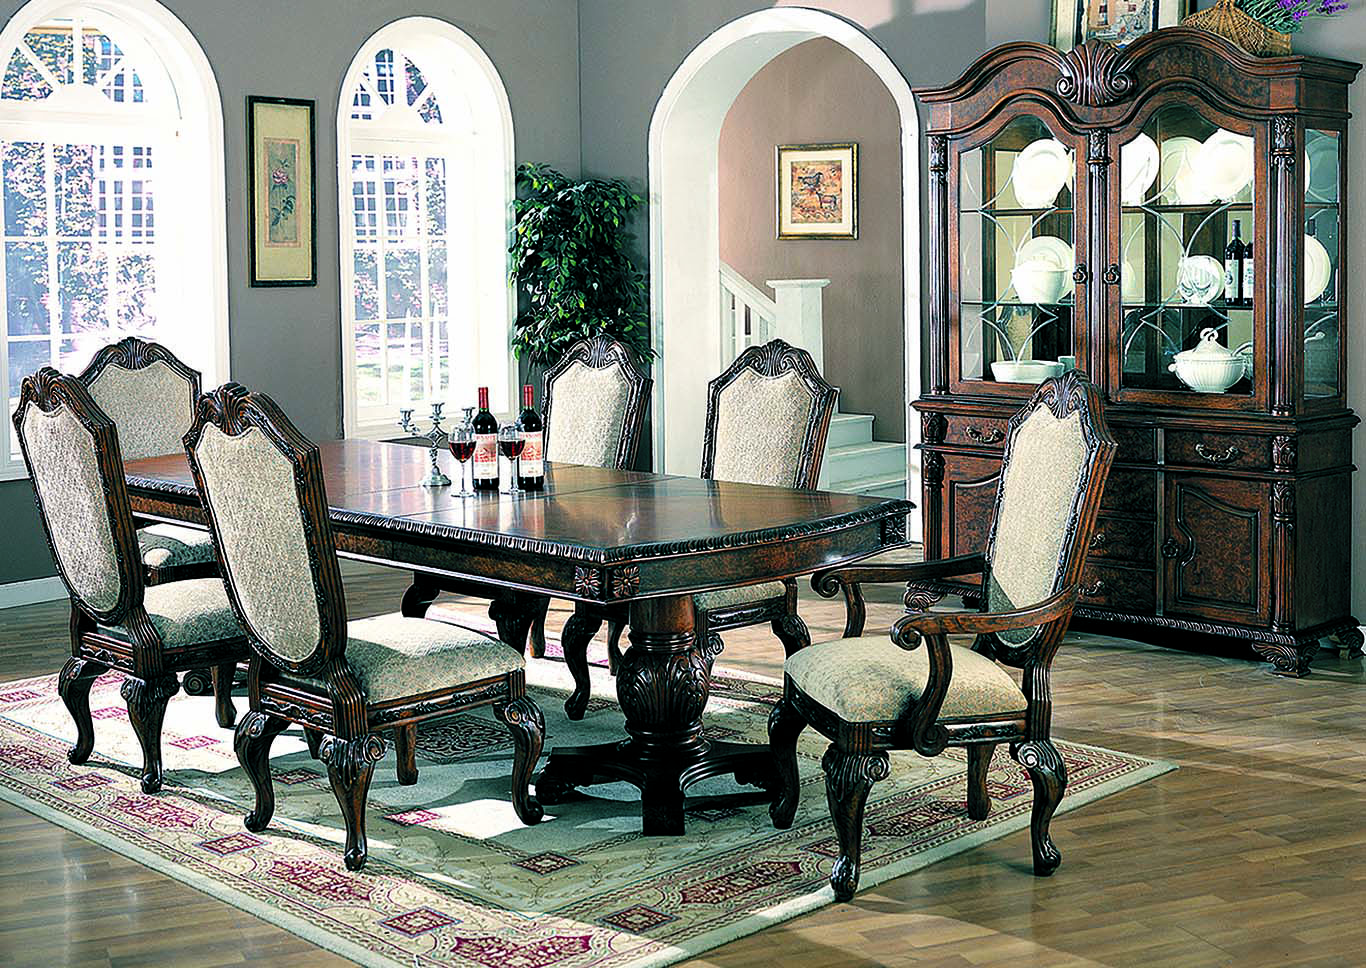 Saint Charles Brown Dining Table w/ 4 Side Chairs, 2 Arm Chairs, Buffet & Hutch,ABF Coaster Furniture